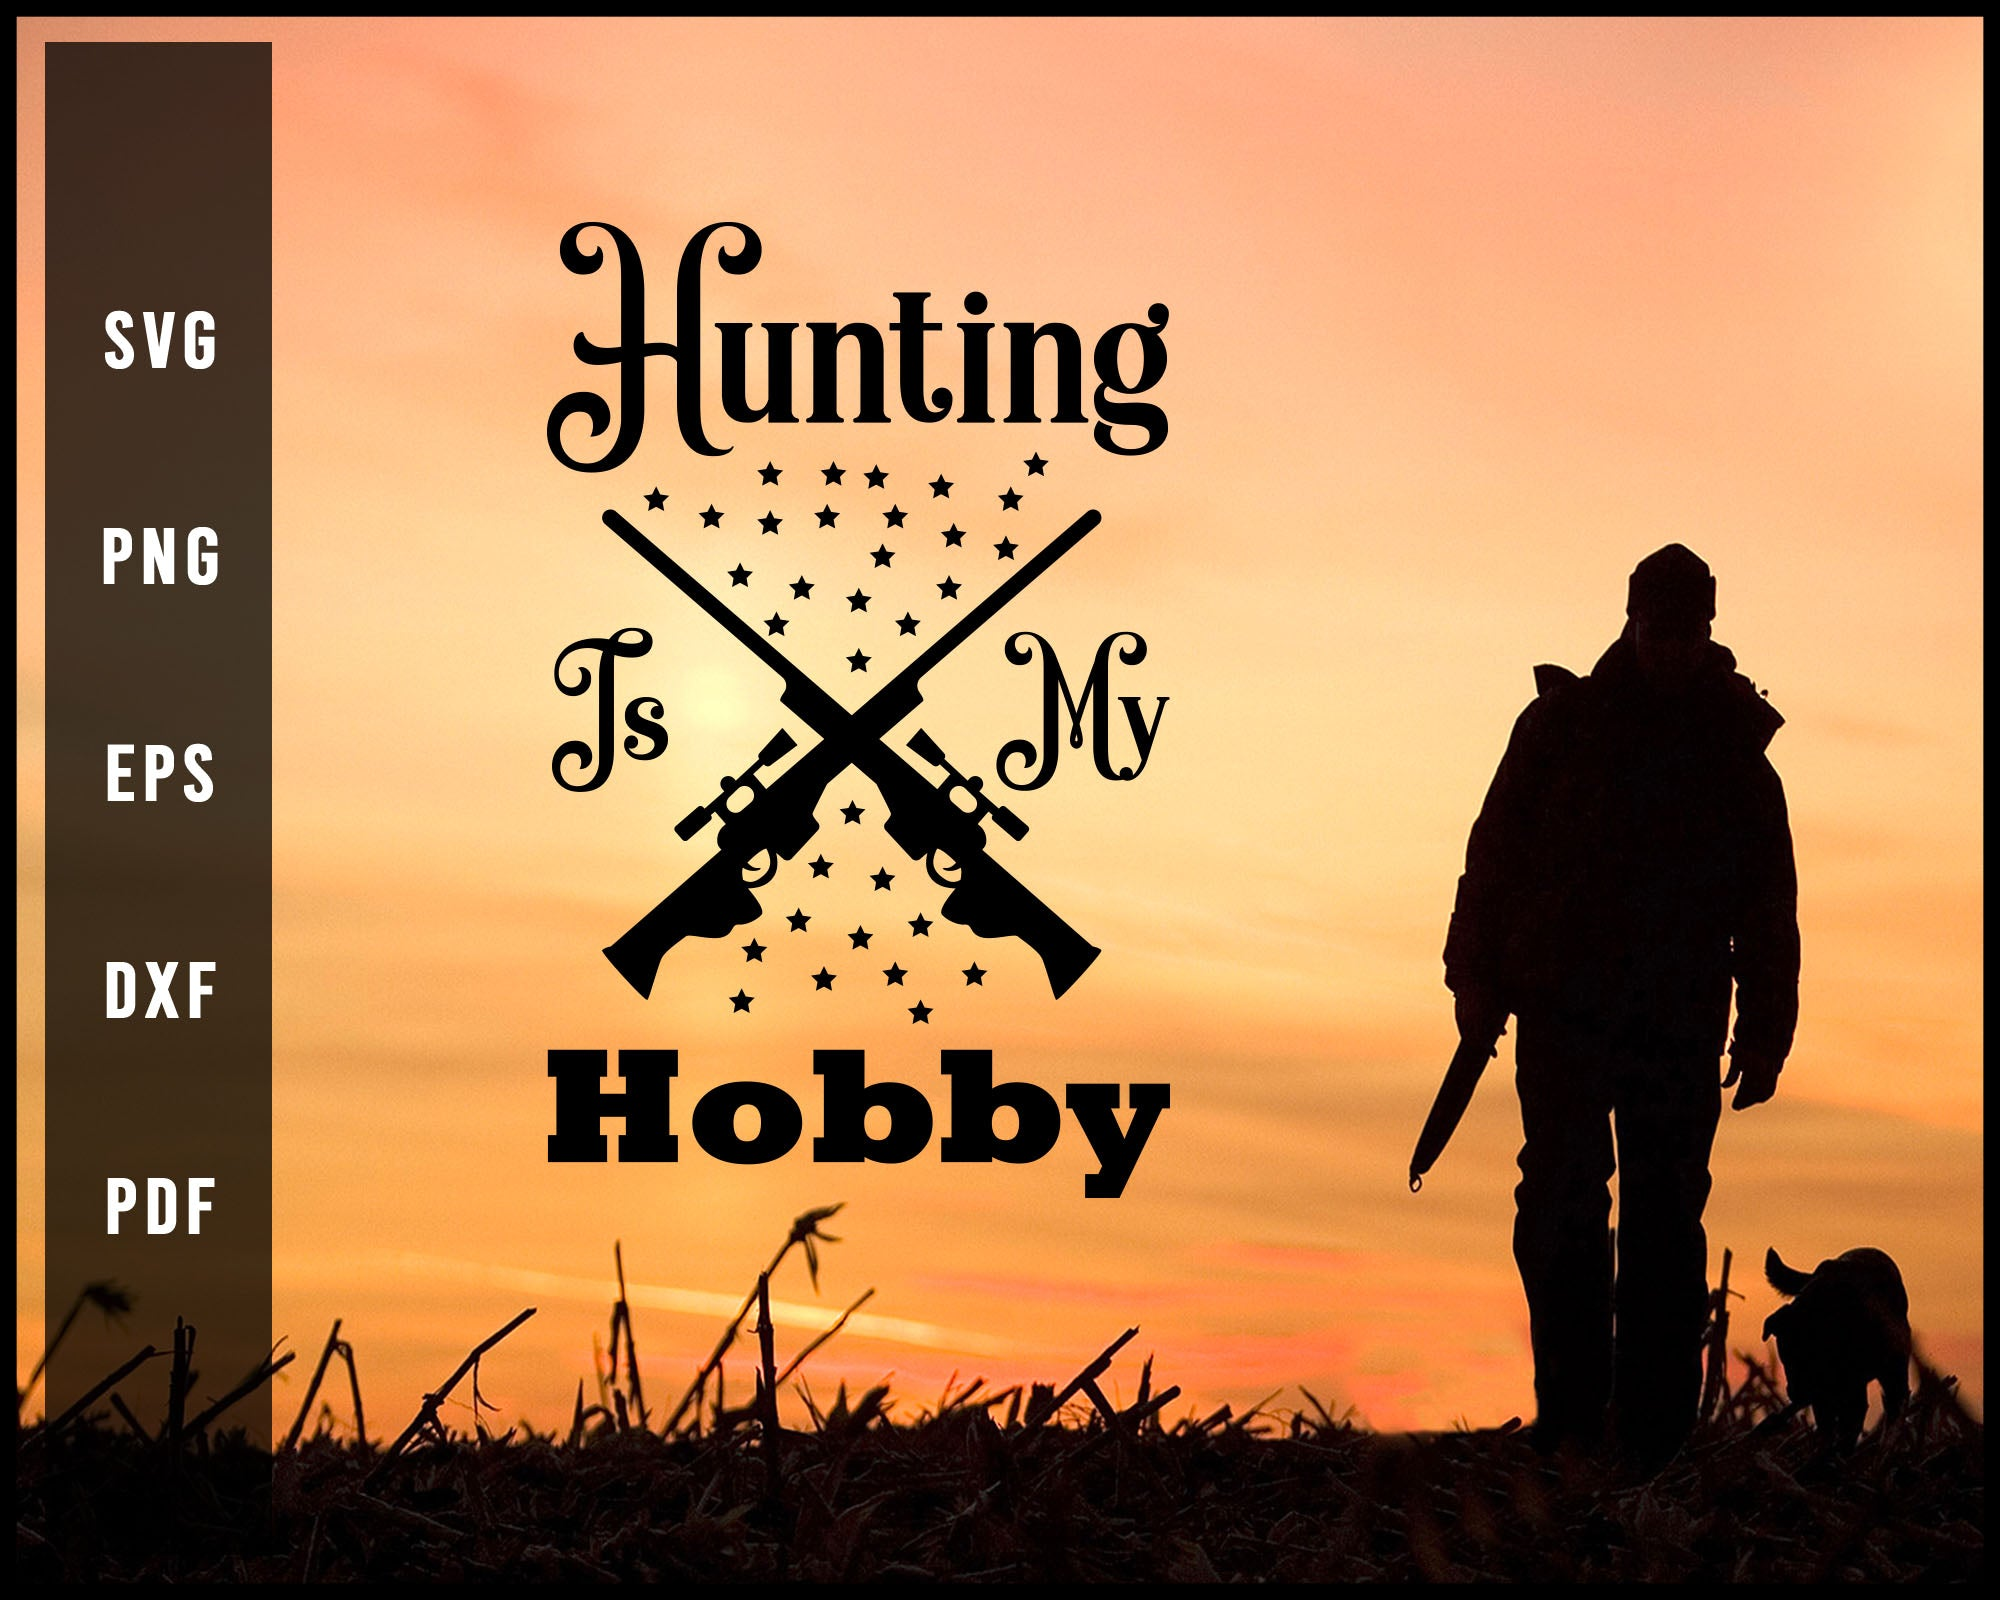 Hunting Is My Hobby svg png Silhouette Designs For Cricut And Printable Files